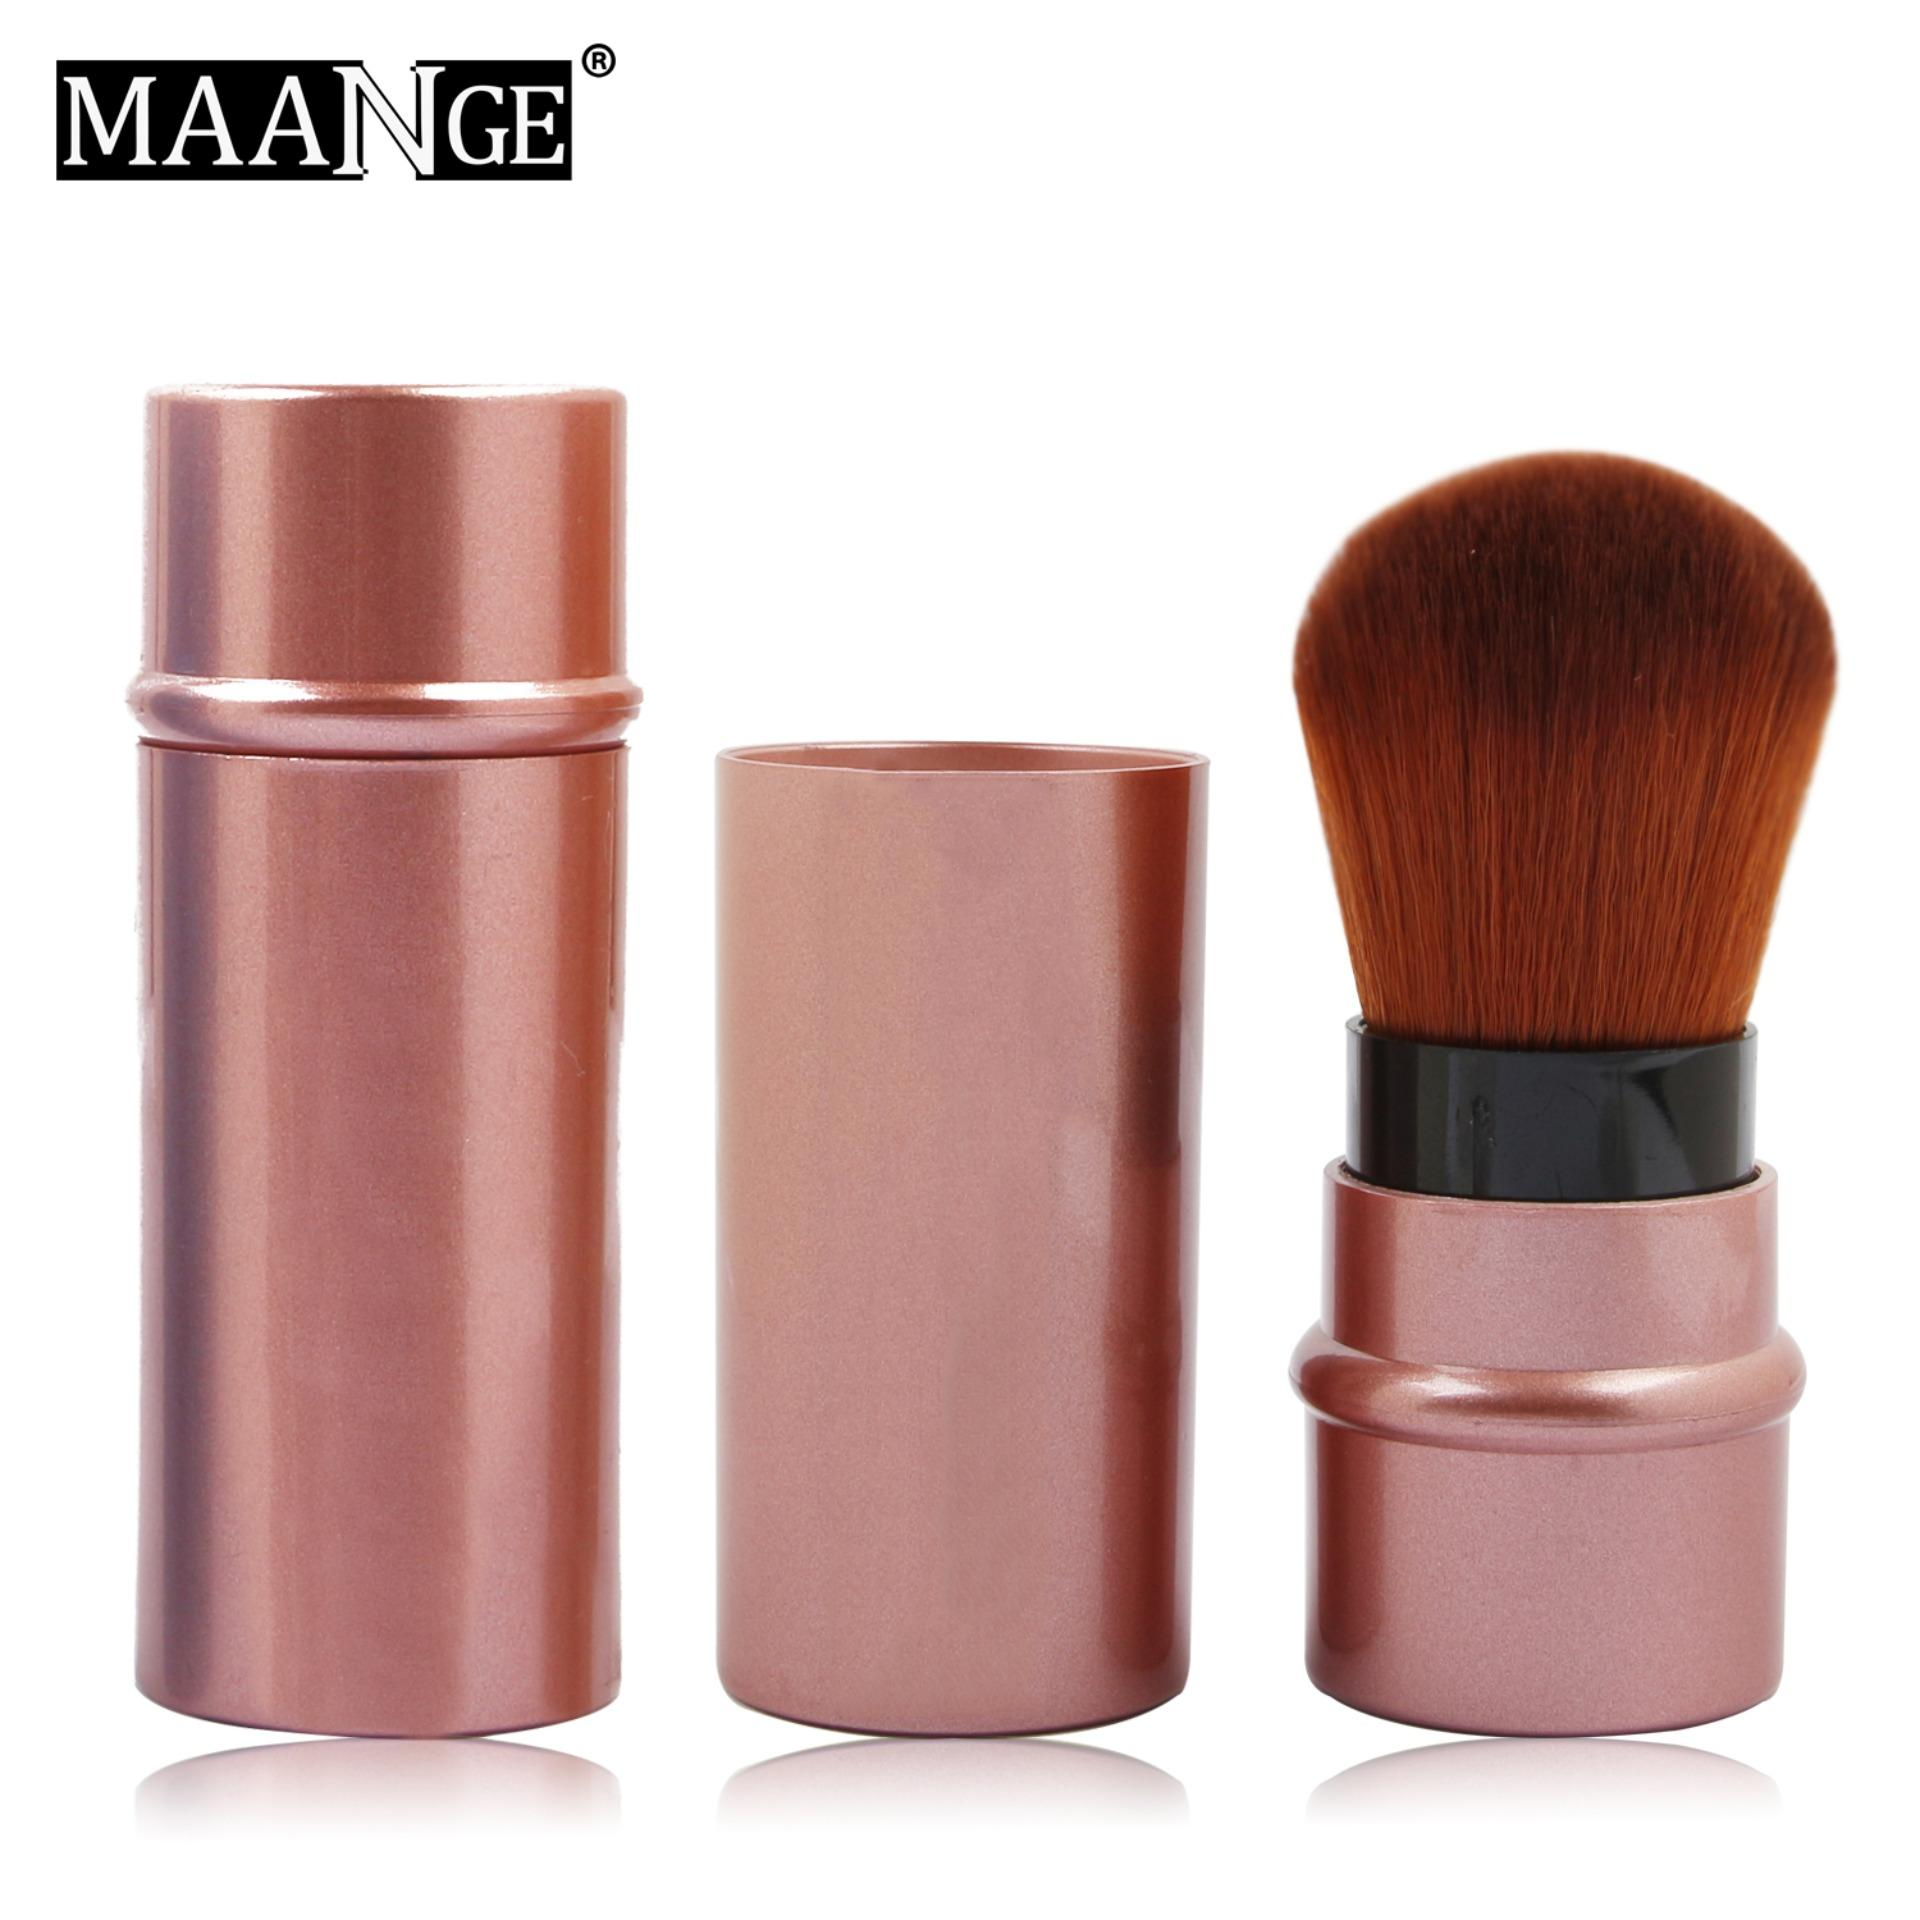 8bee071128bc Makeup Brush brands - Applicator on sale, prices, set & reviews in ...